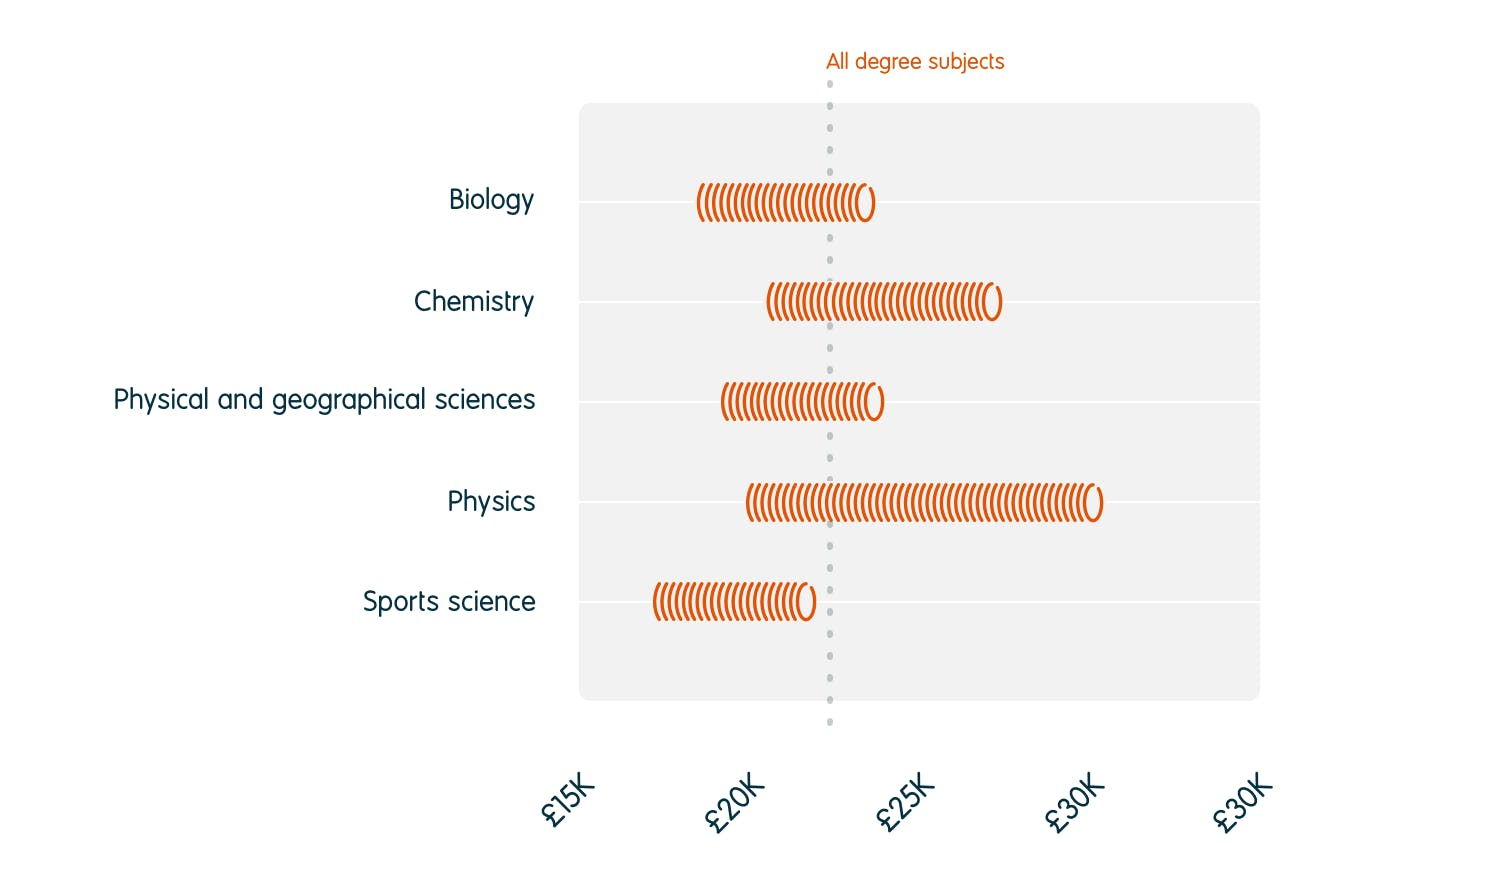 The average starting salary for all graduates was £22,399. <br/>Average starting salaries ranged from £18,500 to £23,800 for biology graduates, £20,500 to £27,500 for chemistry, £19,300 to £24,000 for physical and geographical sciences, £19,900 to £30,500 for physics, and £17,200 to £22,000 for sports science.